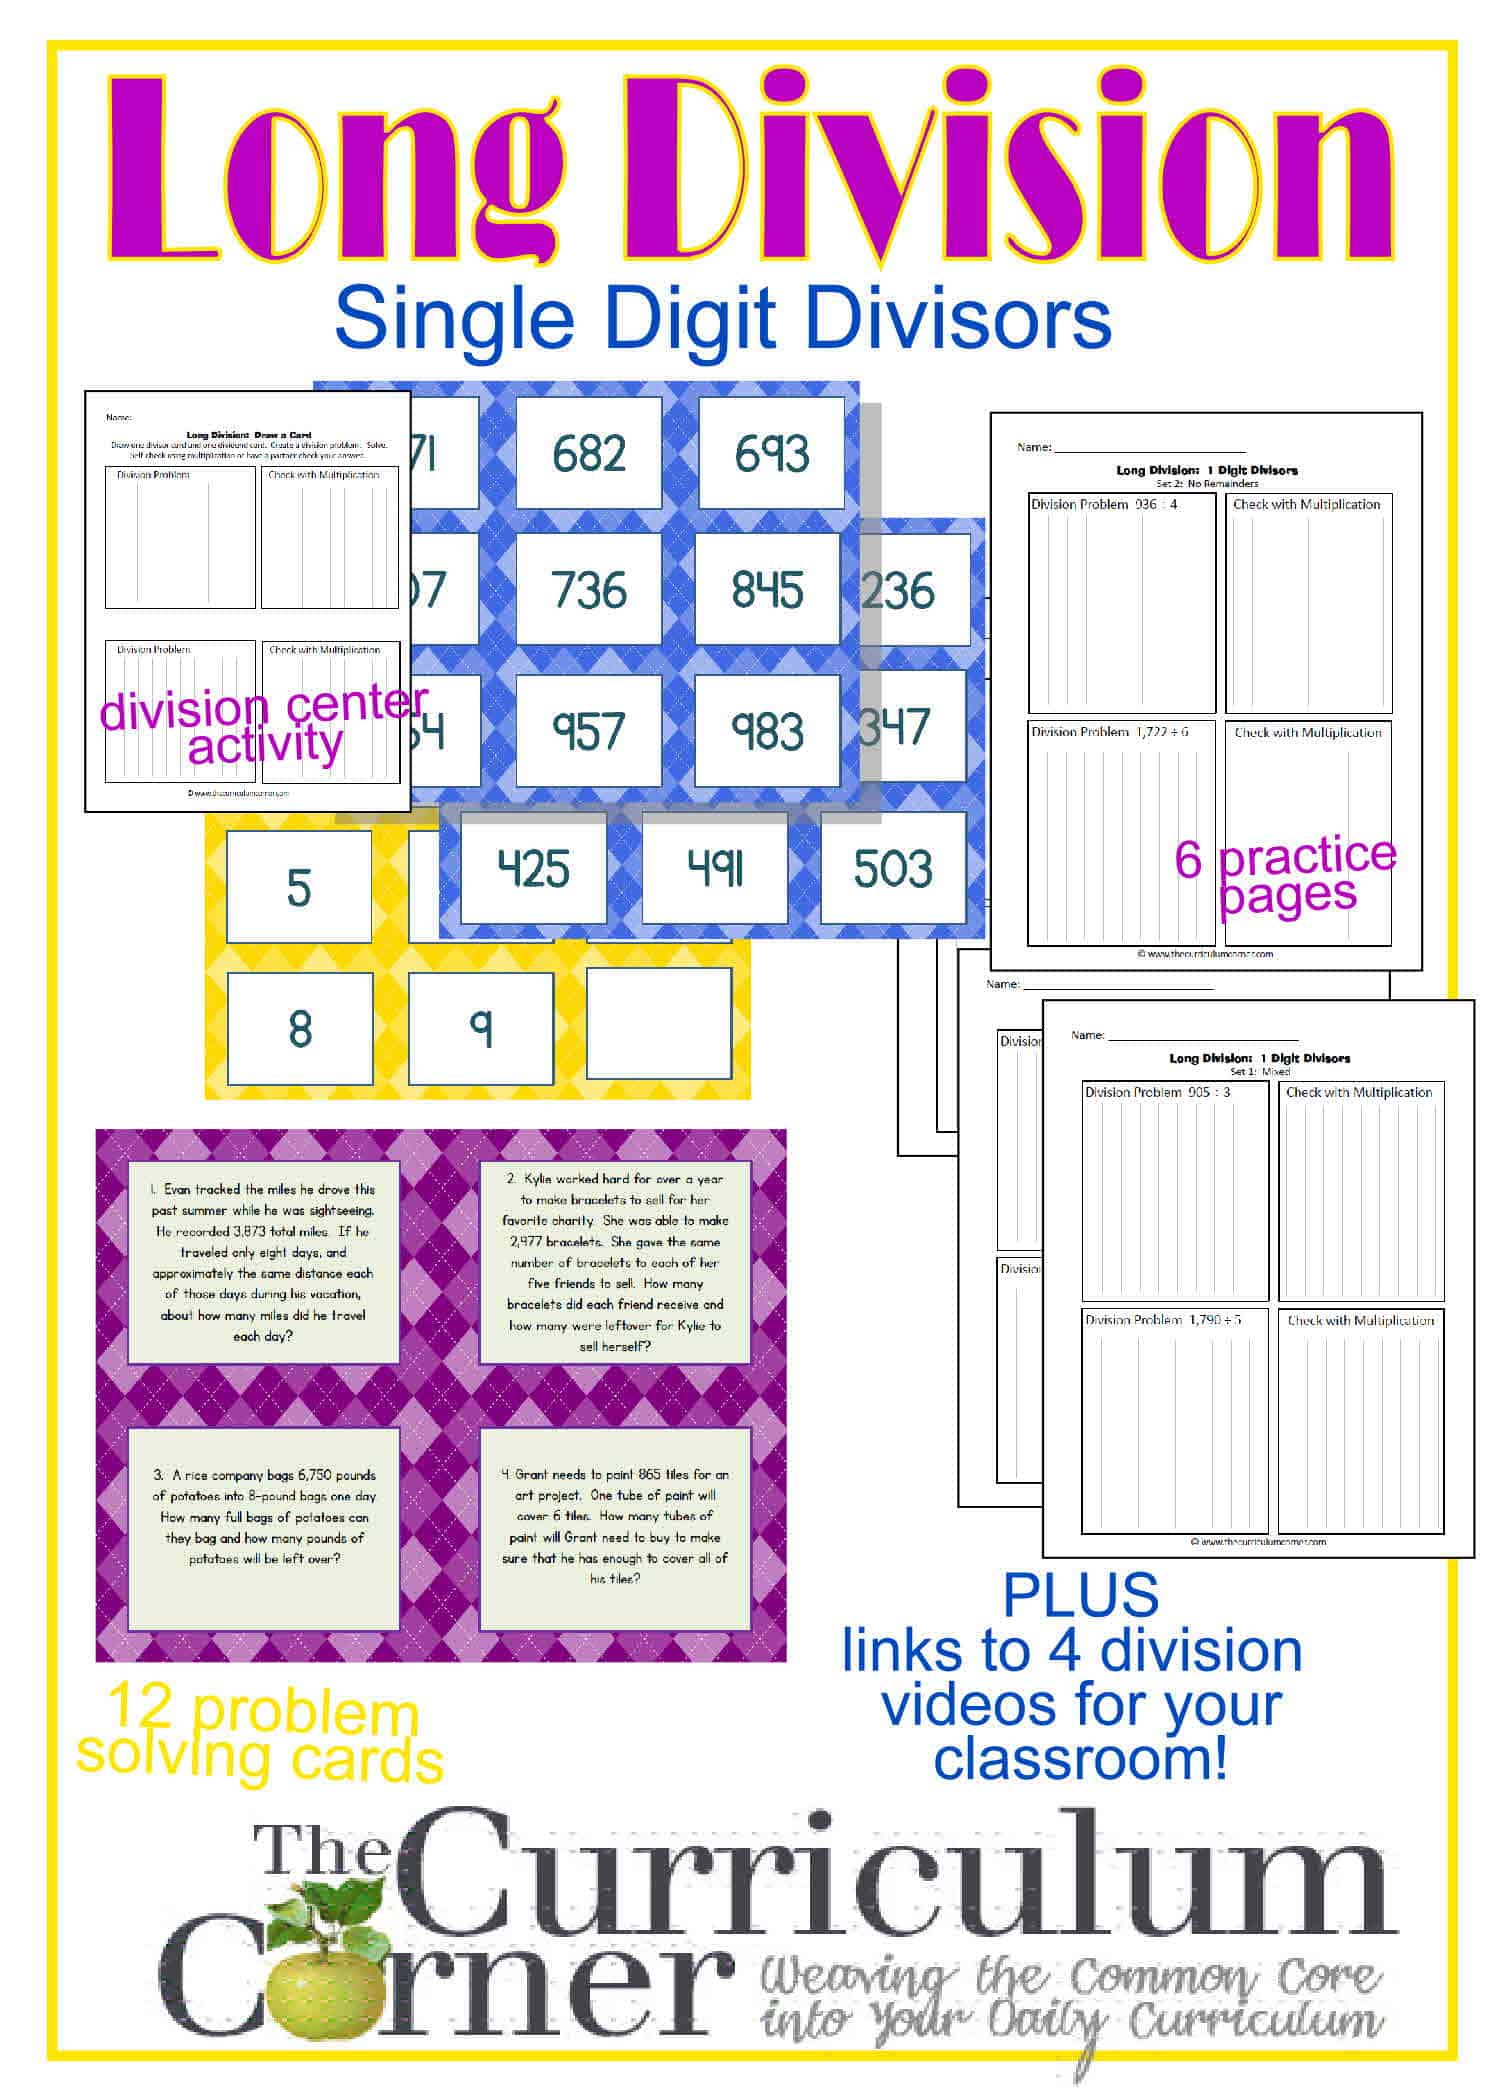 long division resources 1 digit divisor the curriculum corner 4 5 6. Black Bedroom Furniture Sets. Home Design Ideas